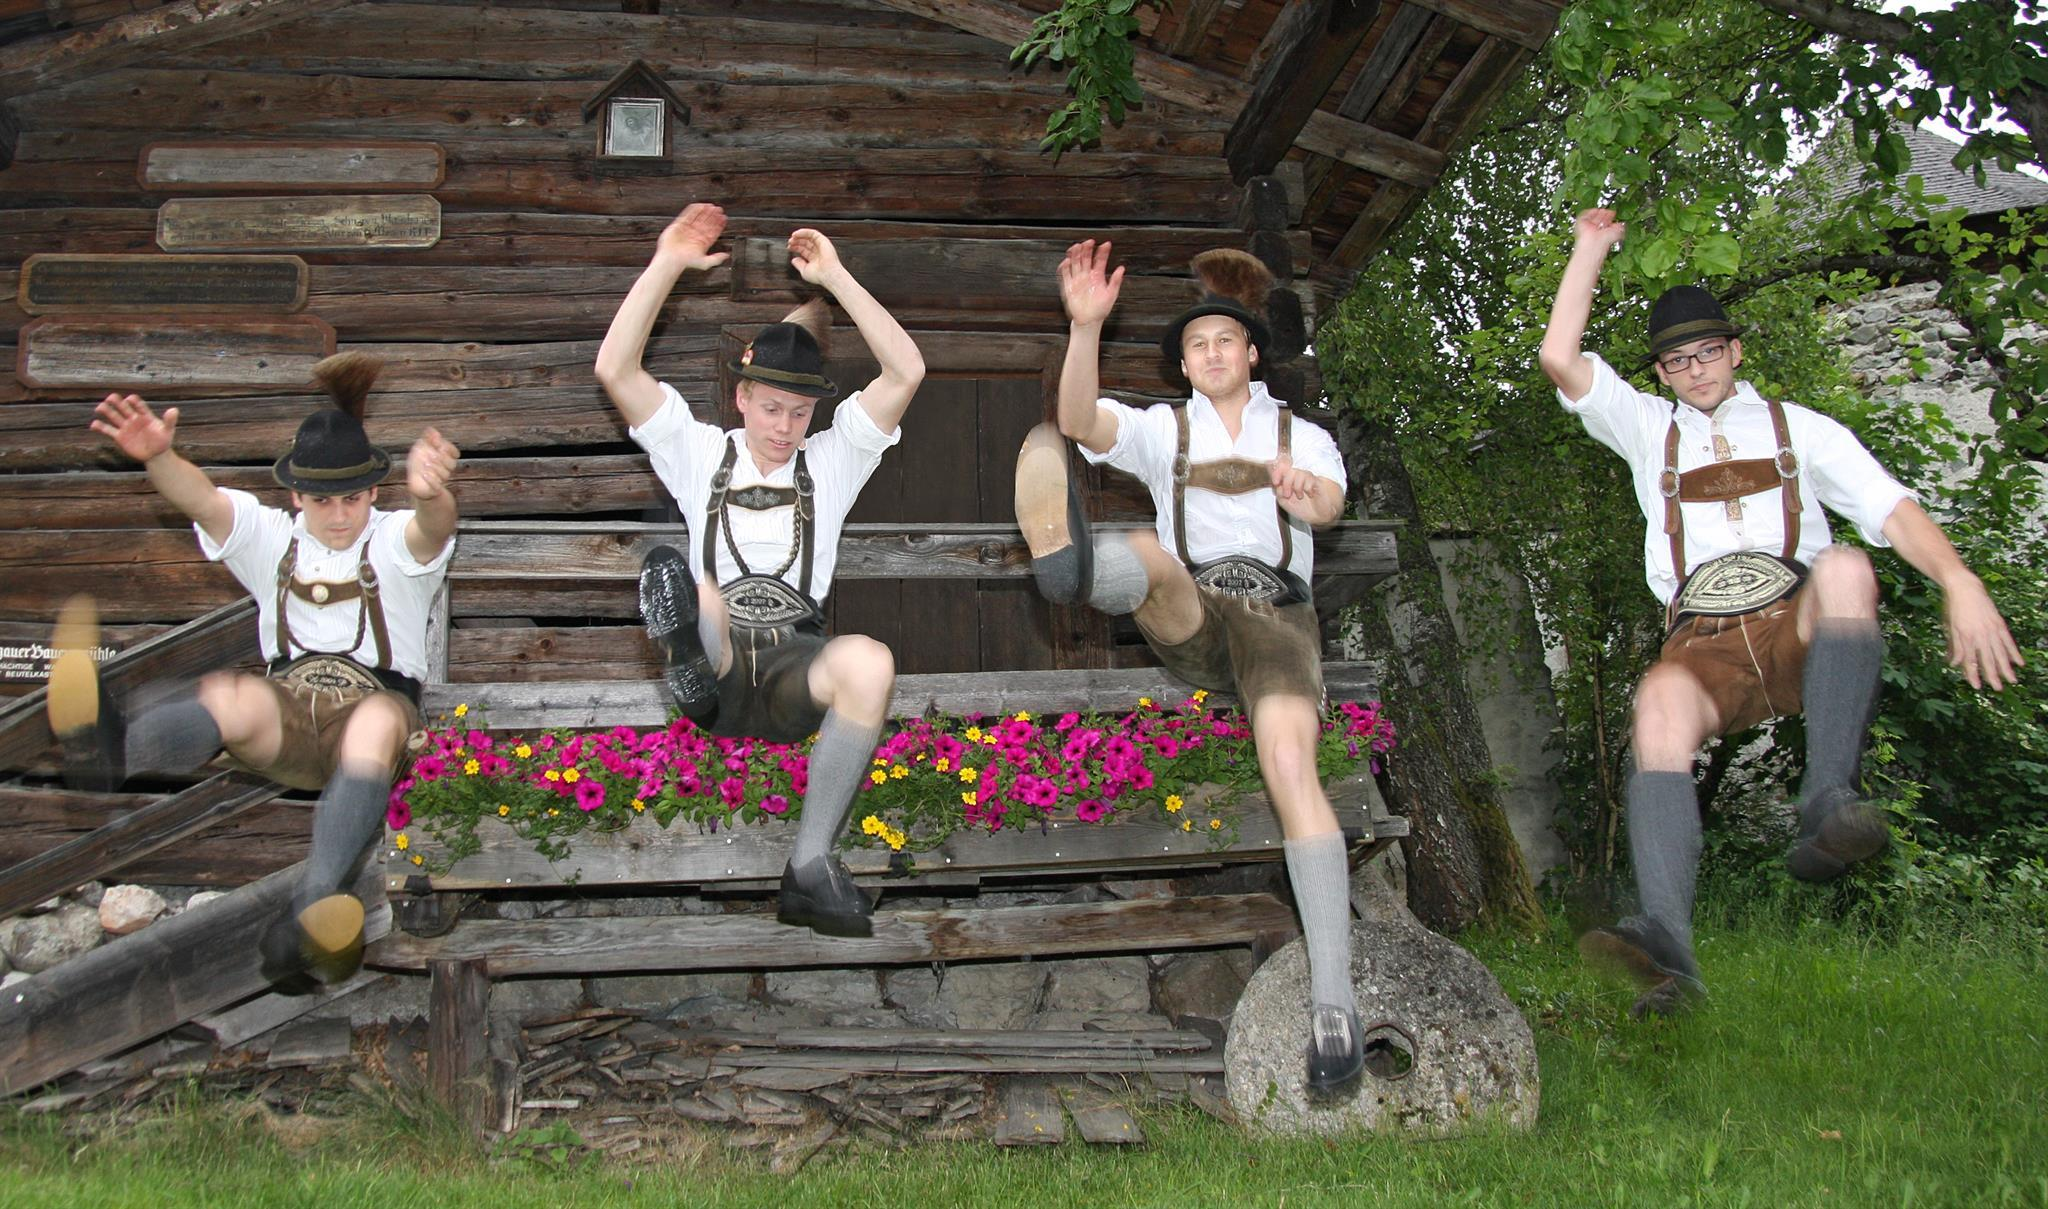 Traditional evening at the castle Kaprun - 01/09/2020, from 8:00 PM